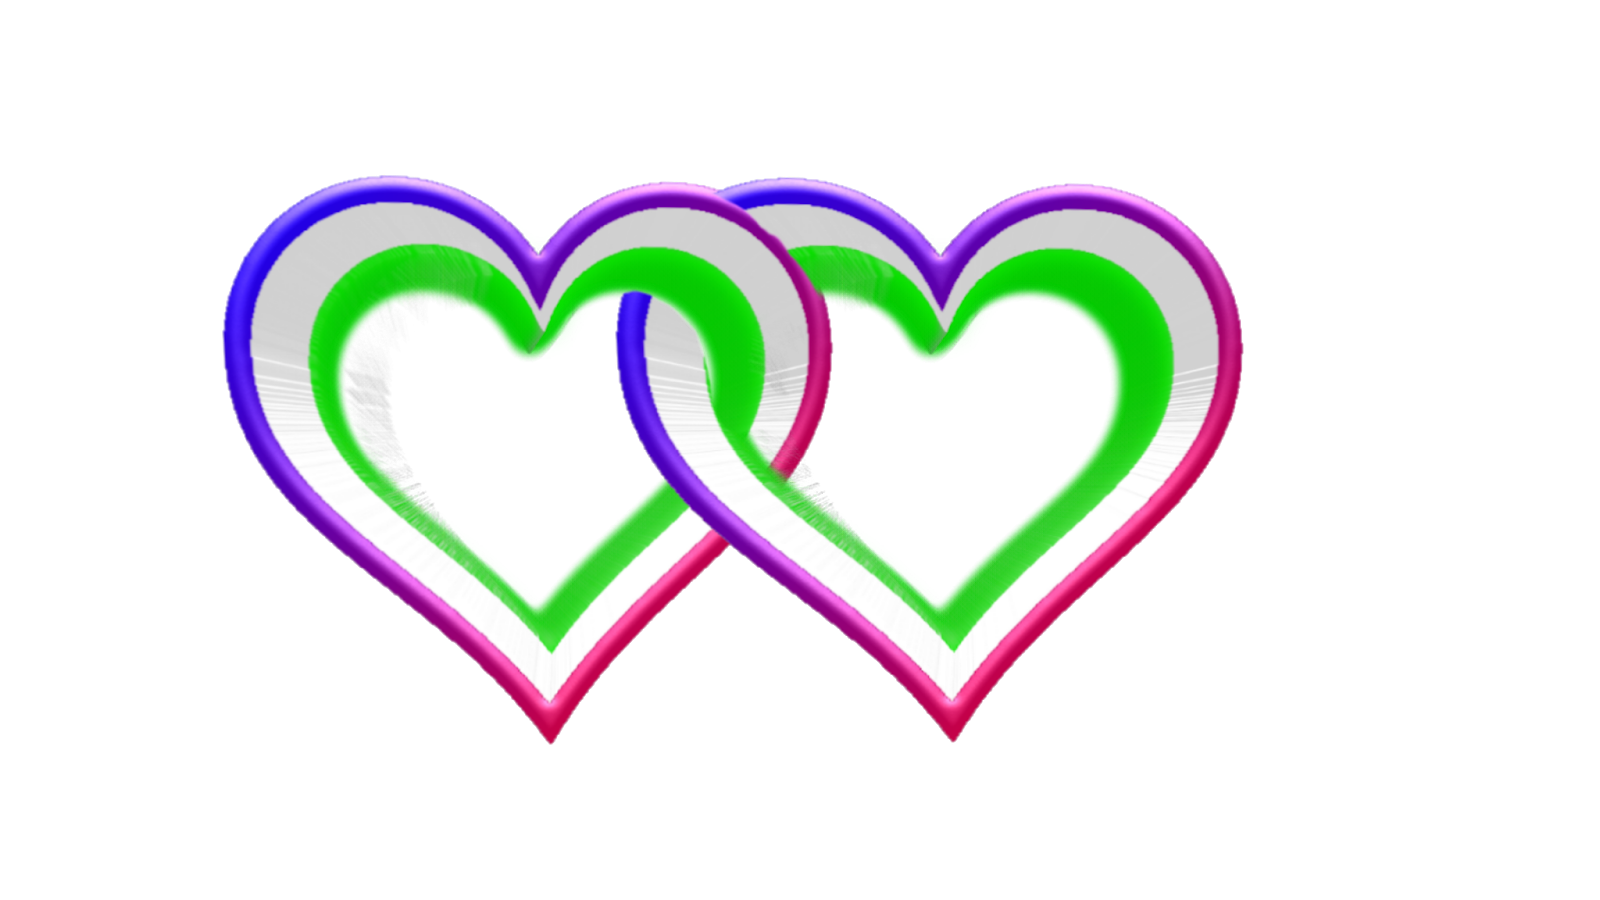 Love Png For Picsart Love Png Text Love Png Background Love